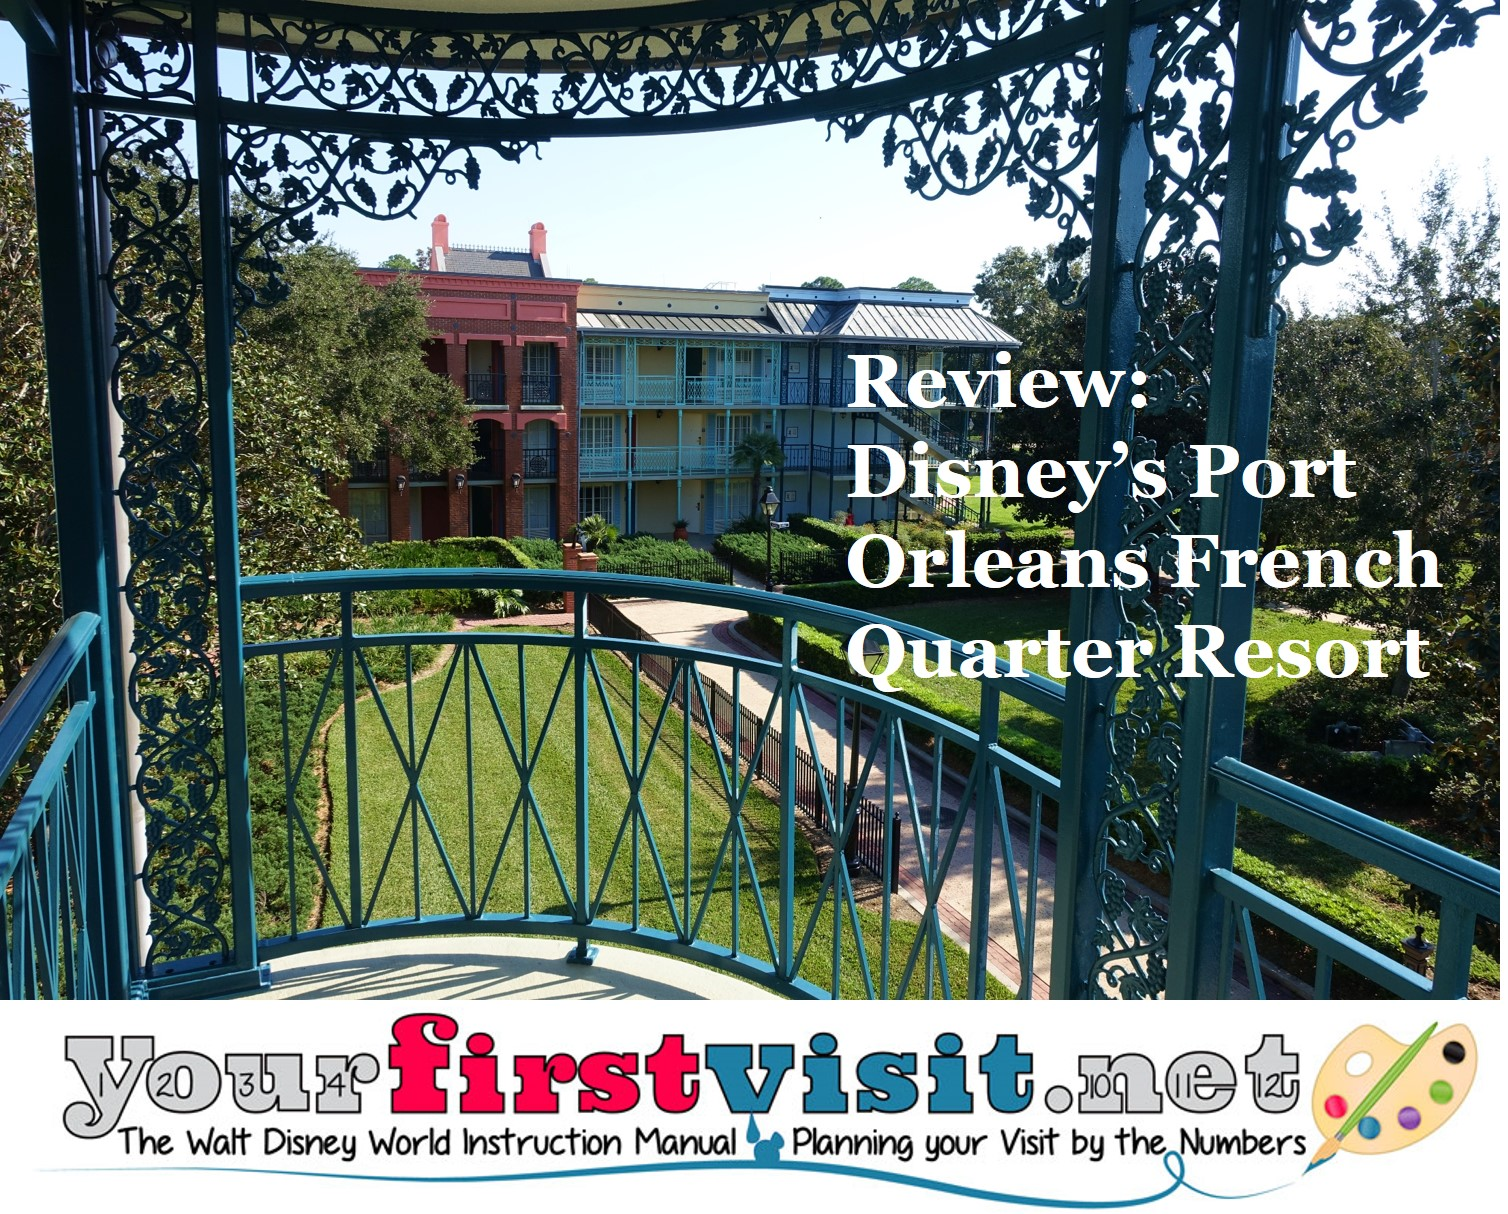 disneys-port-orleans-french-quarter-resort-from-yourfirstvisit-net